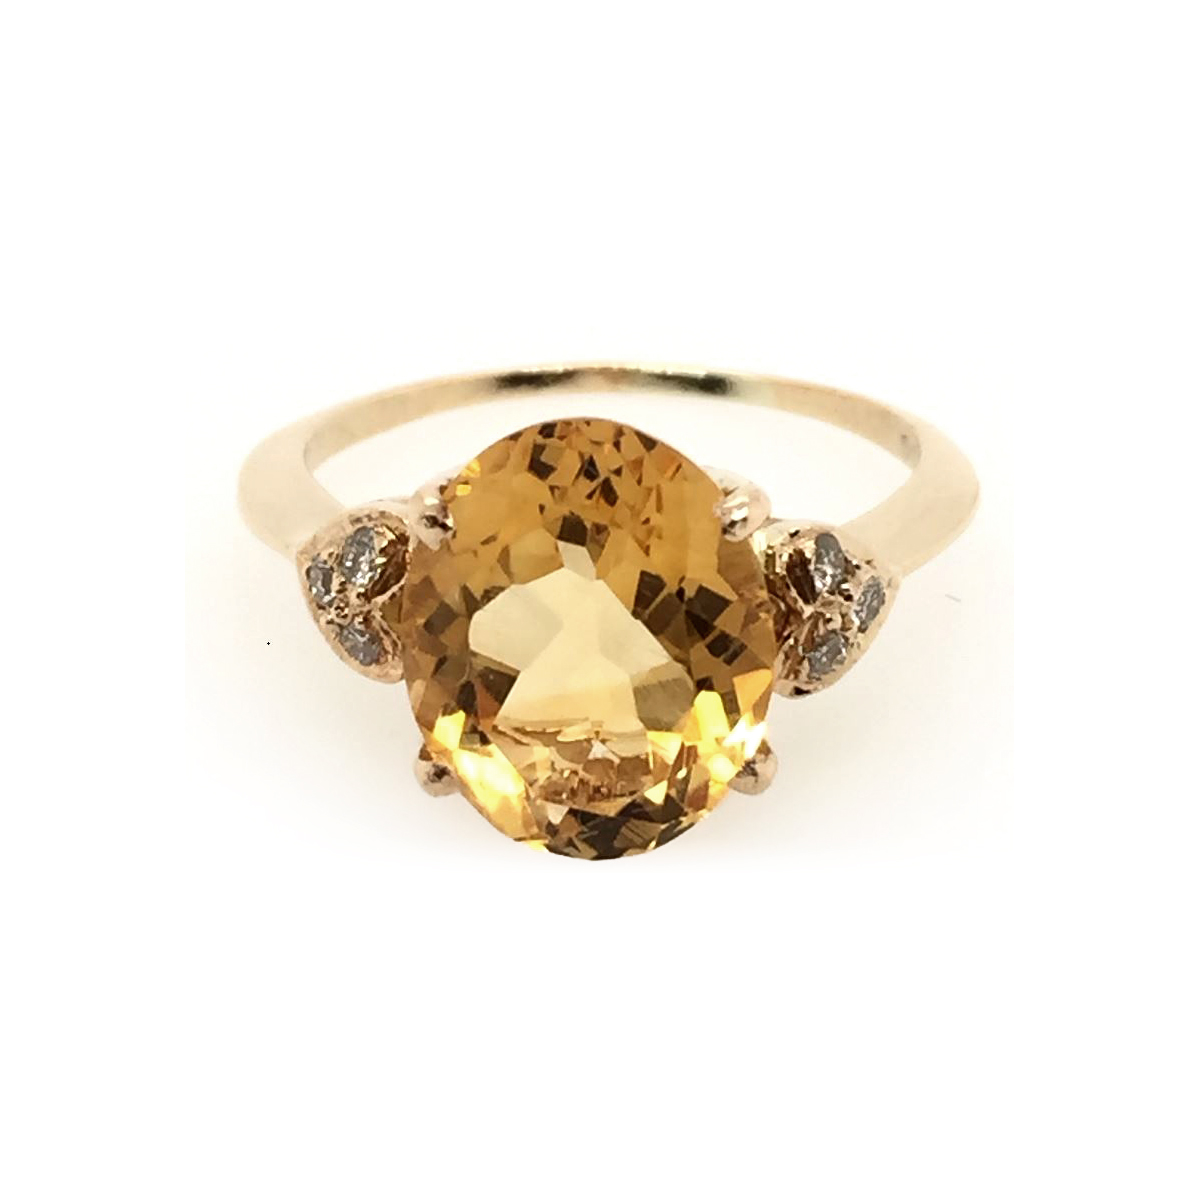 Vintage 18 Karat Yellow Gold Diamond and Citrine Ring